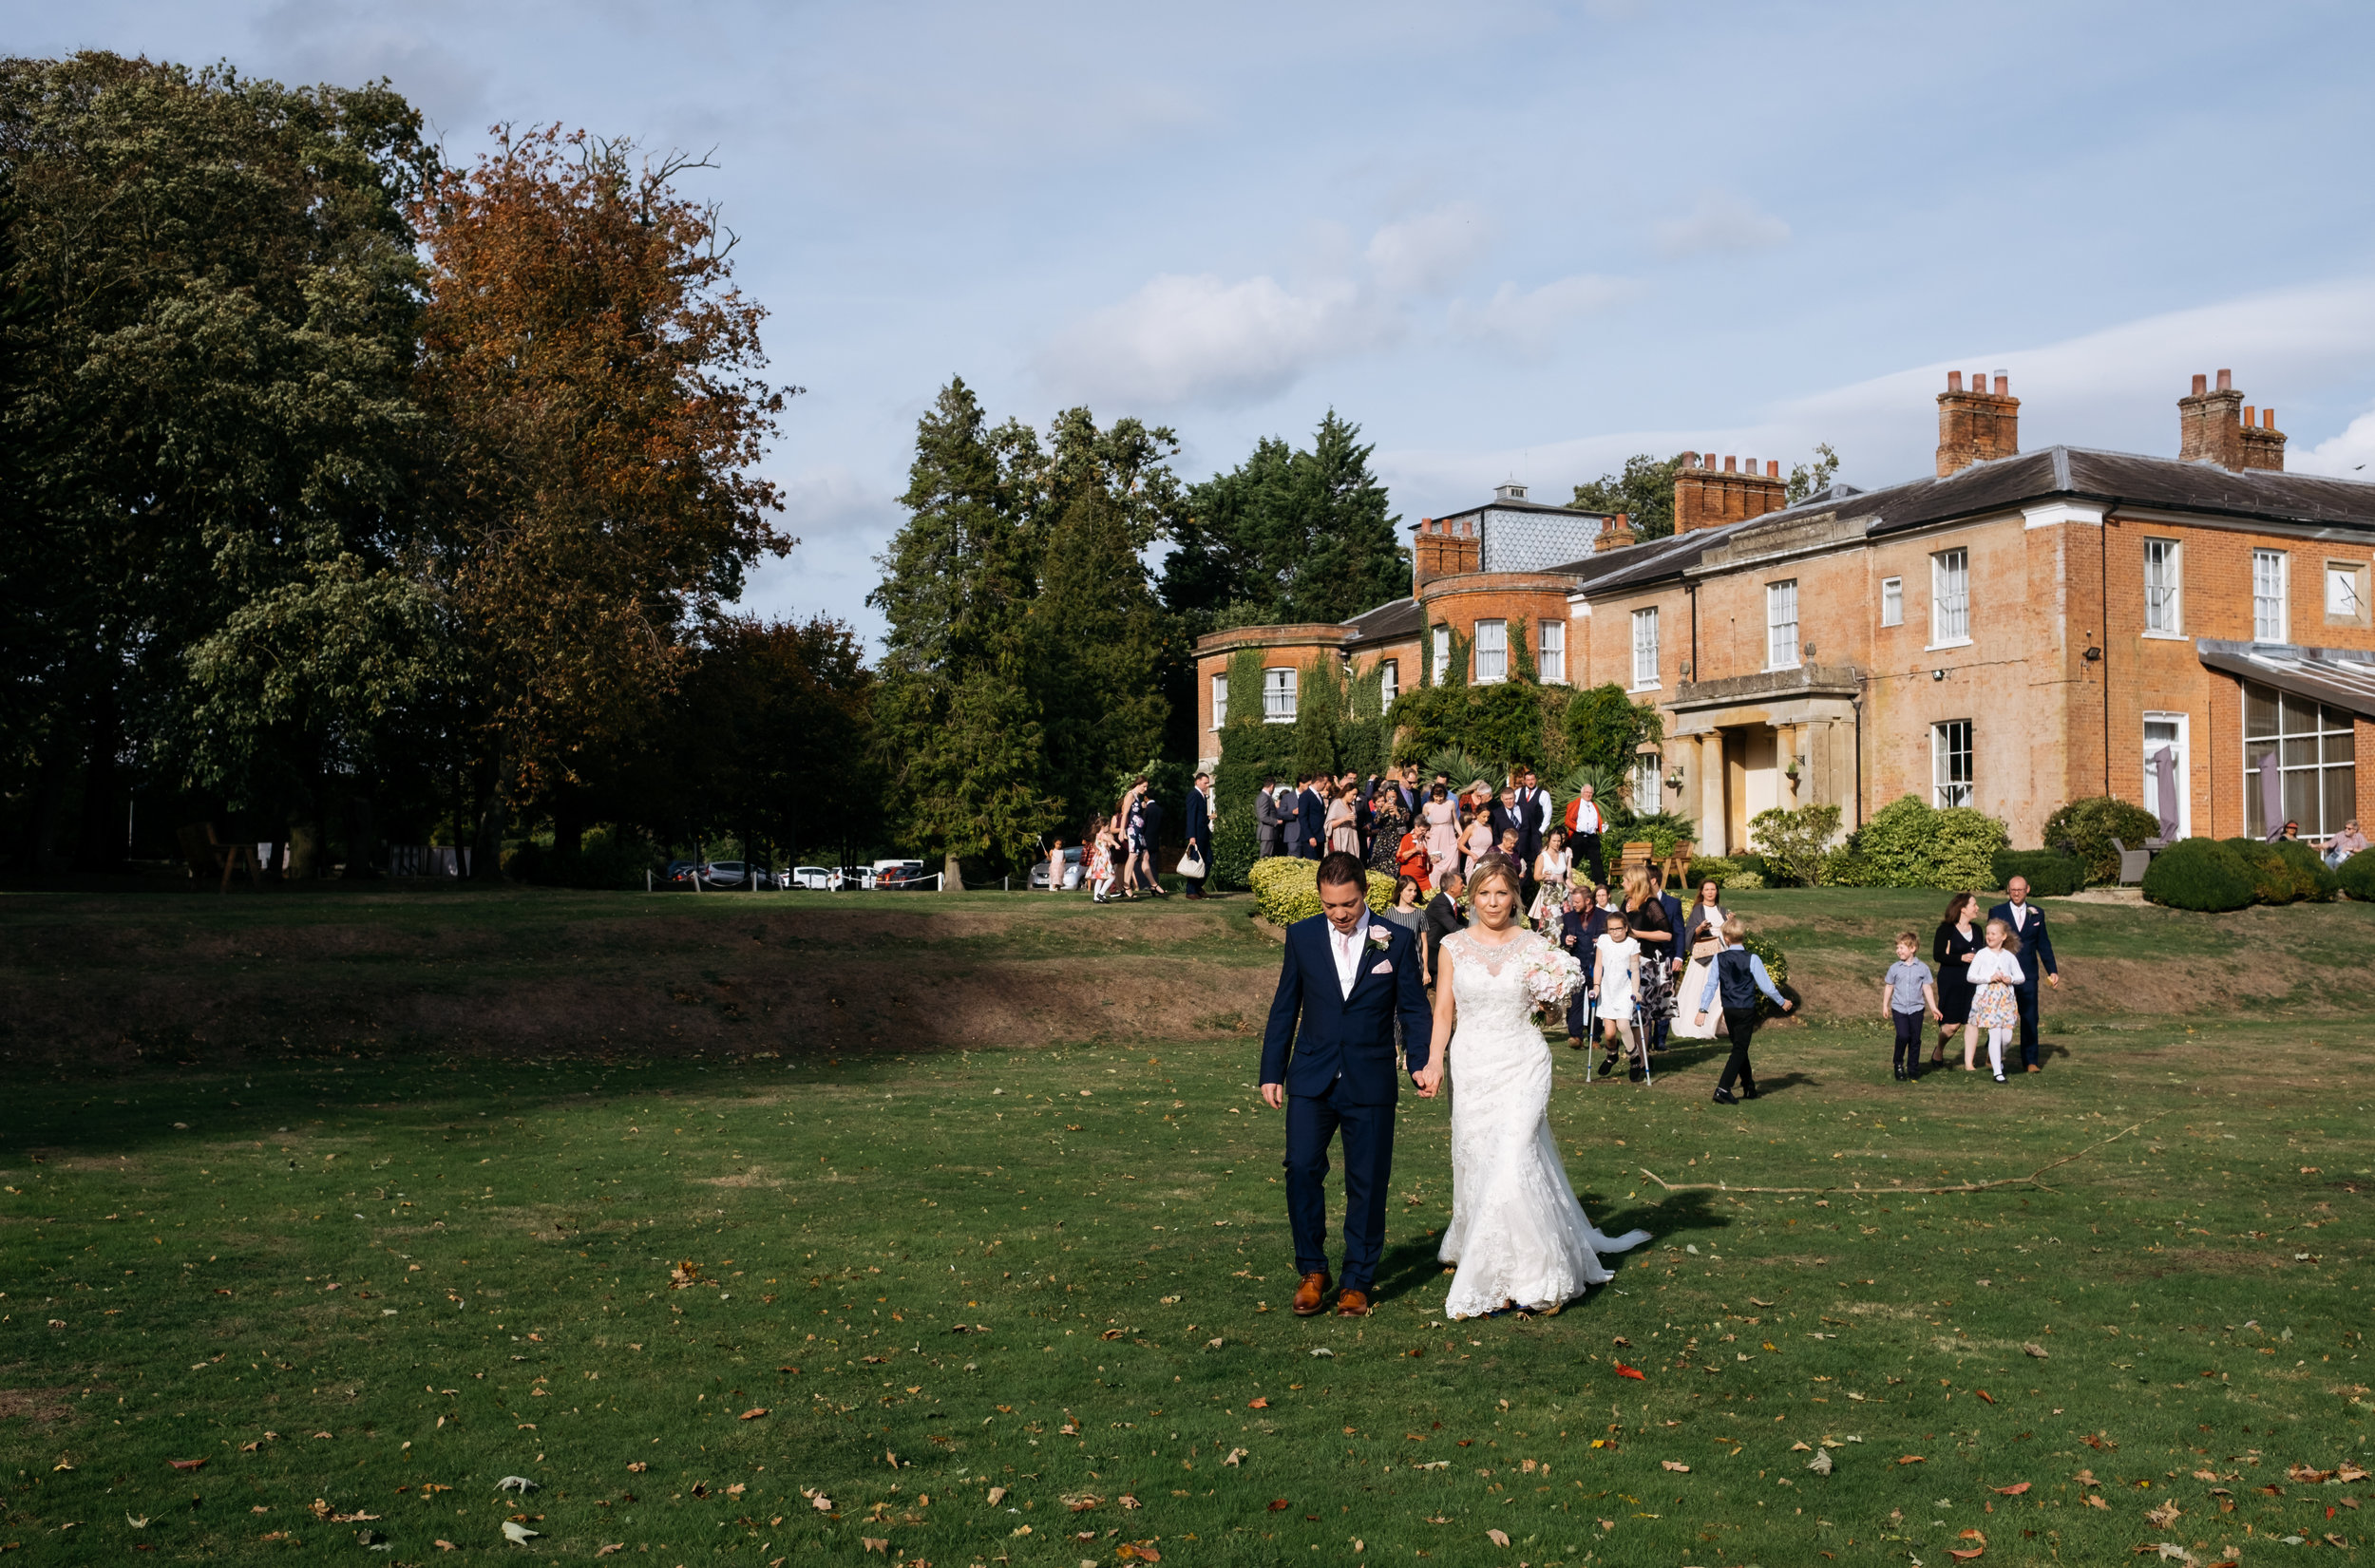 Bride and Groom walking around the grounds at Mercure Newbury Elcot Park Hotel wedding